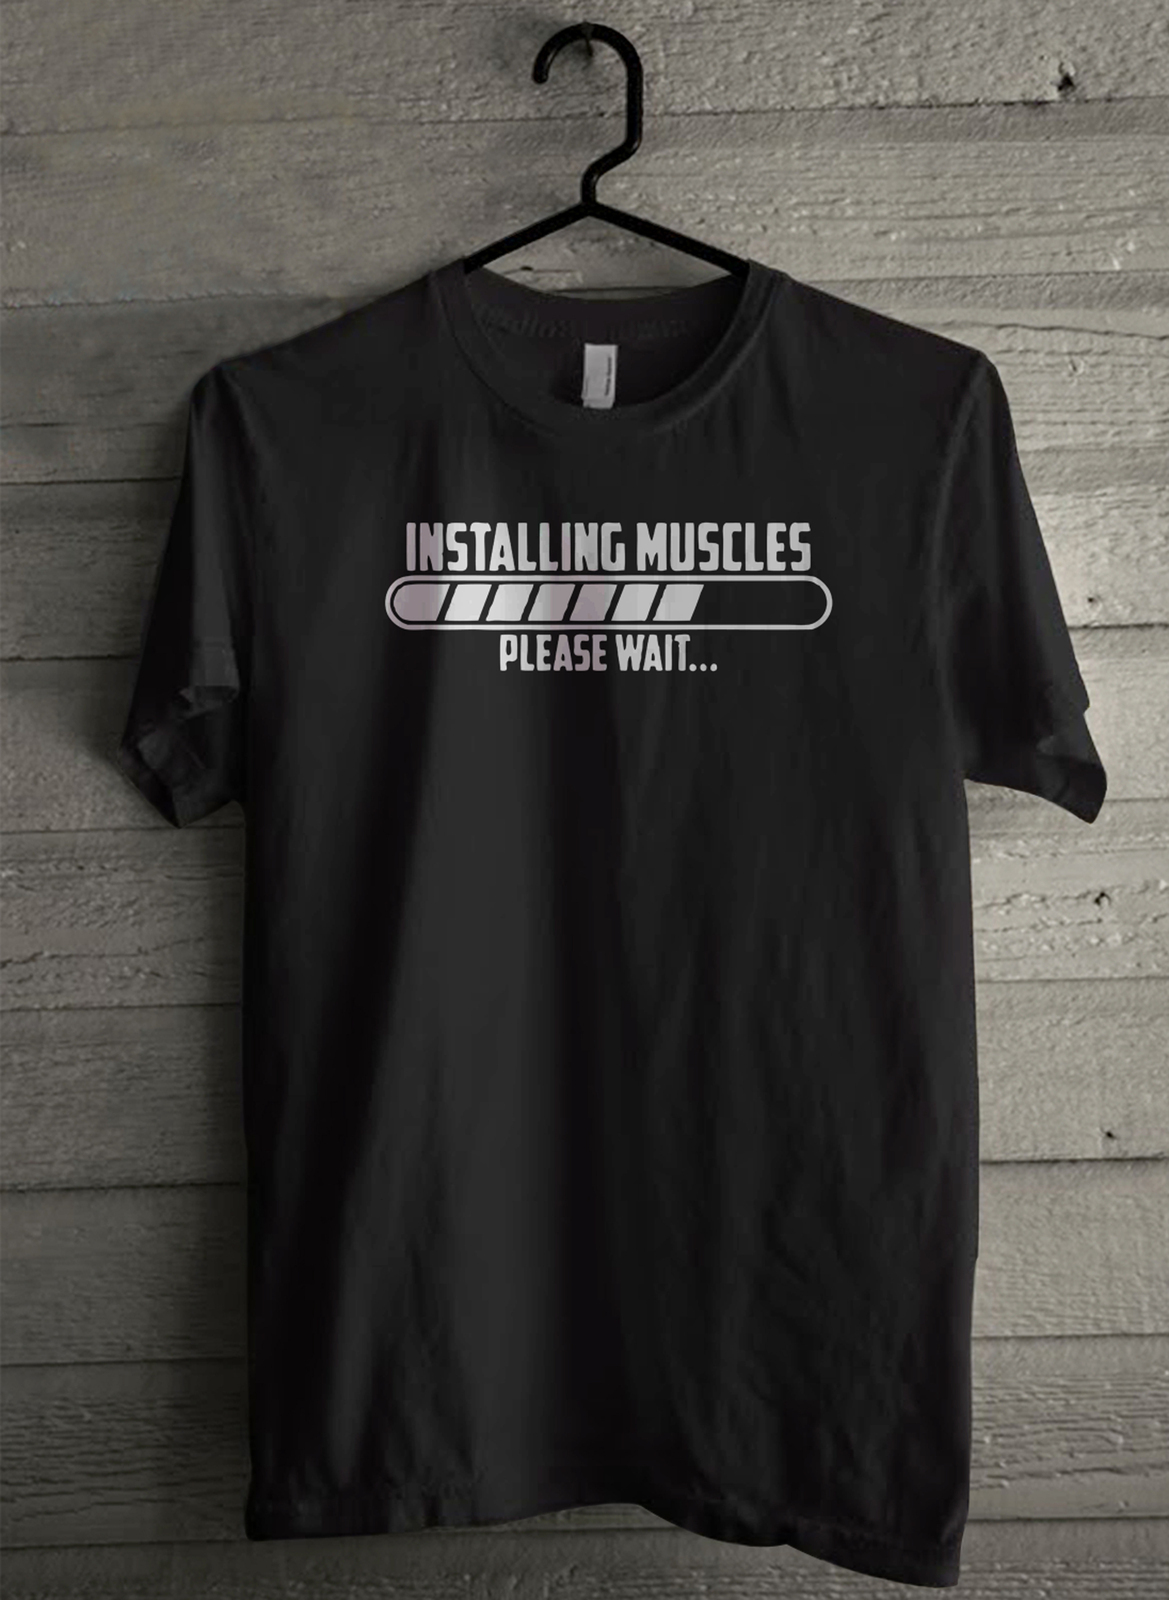 Primary image for Installing Muscle - Custom Men's T-Shirt (715)